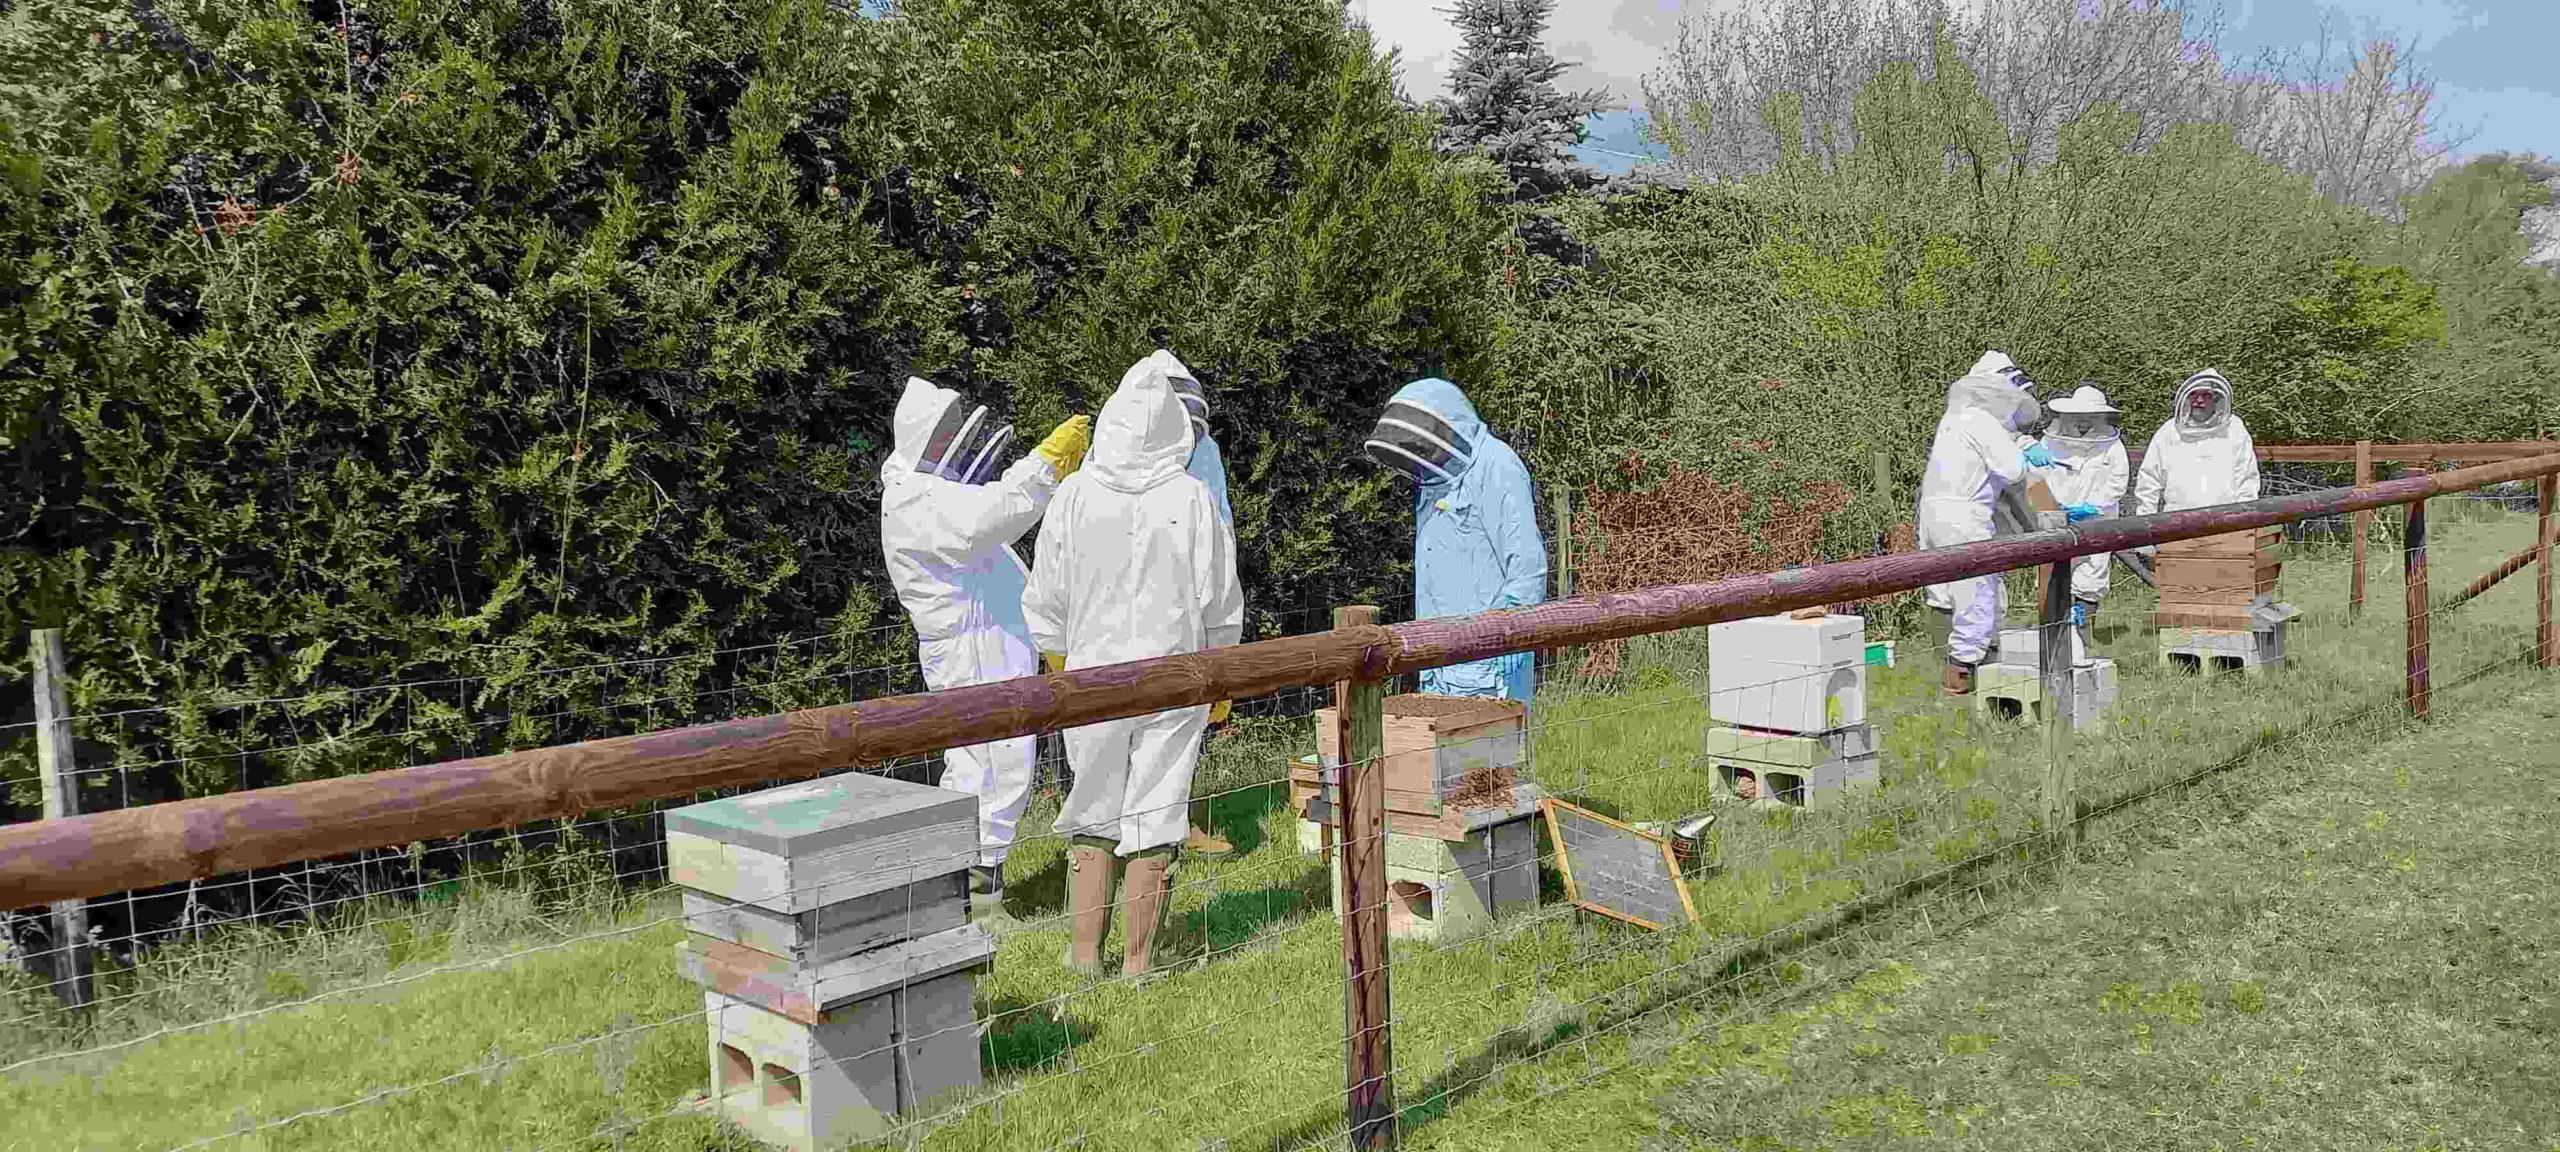 Shipston Beekeepers Introduction to Beekeeping course 2021